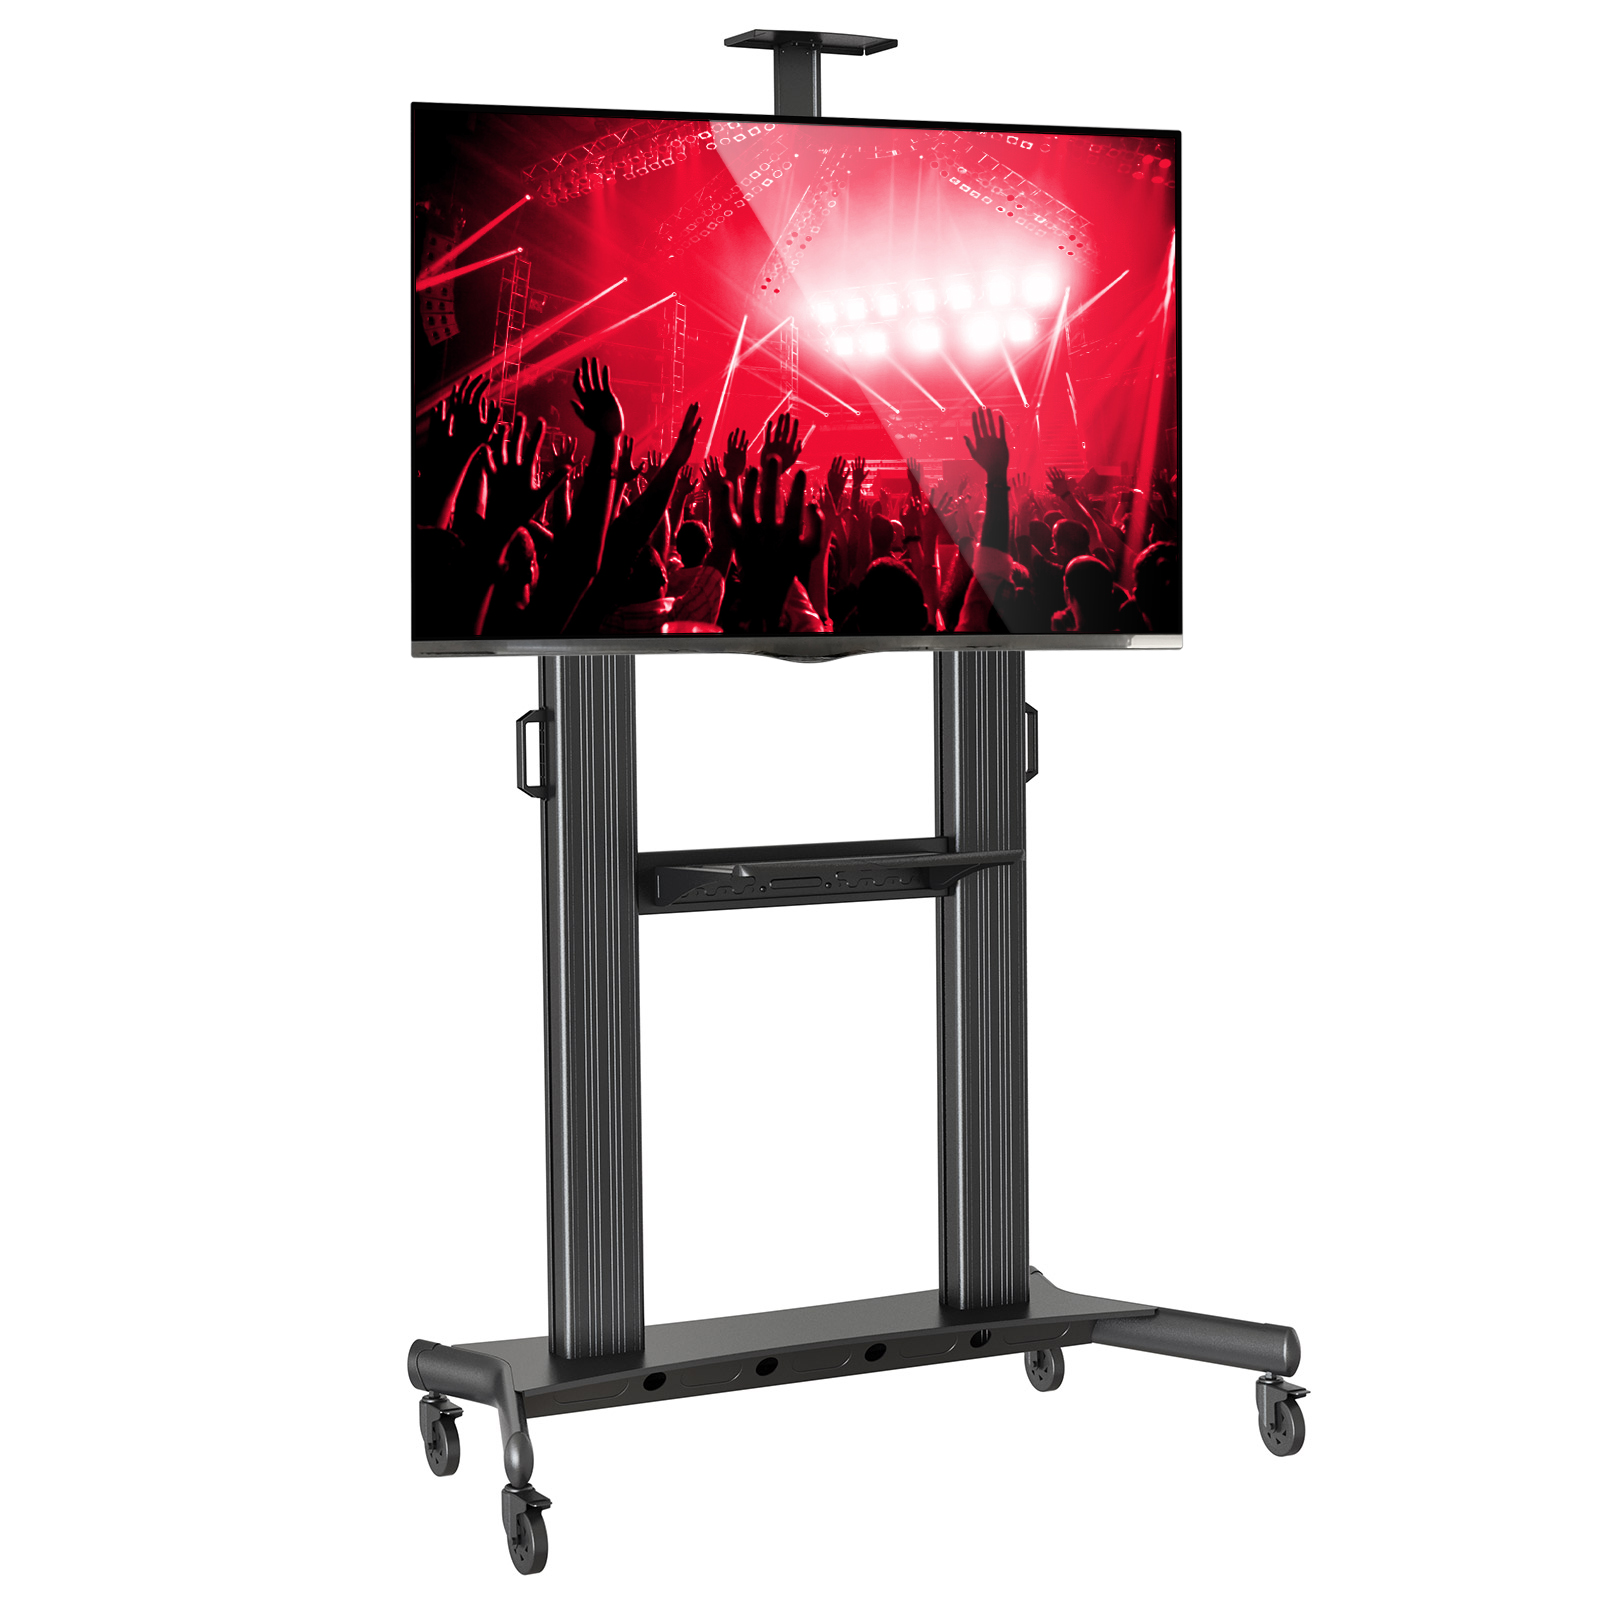 Mount Factory Rolling TV Stand Mobile TV Cart for 40-90 i...